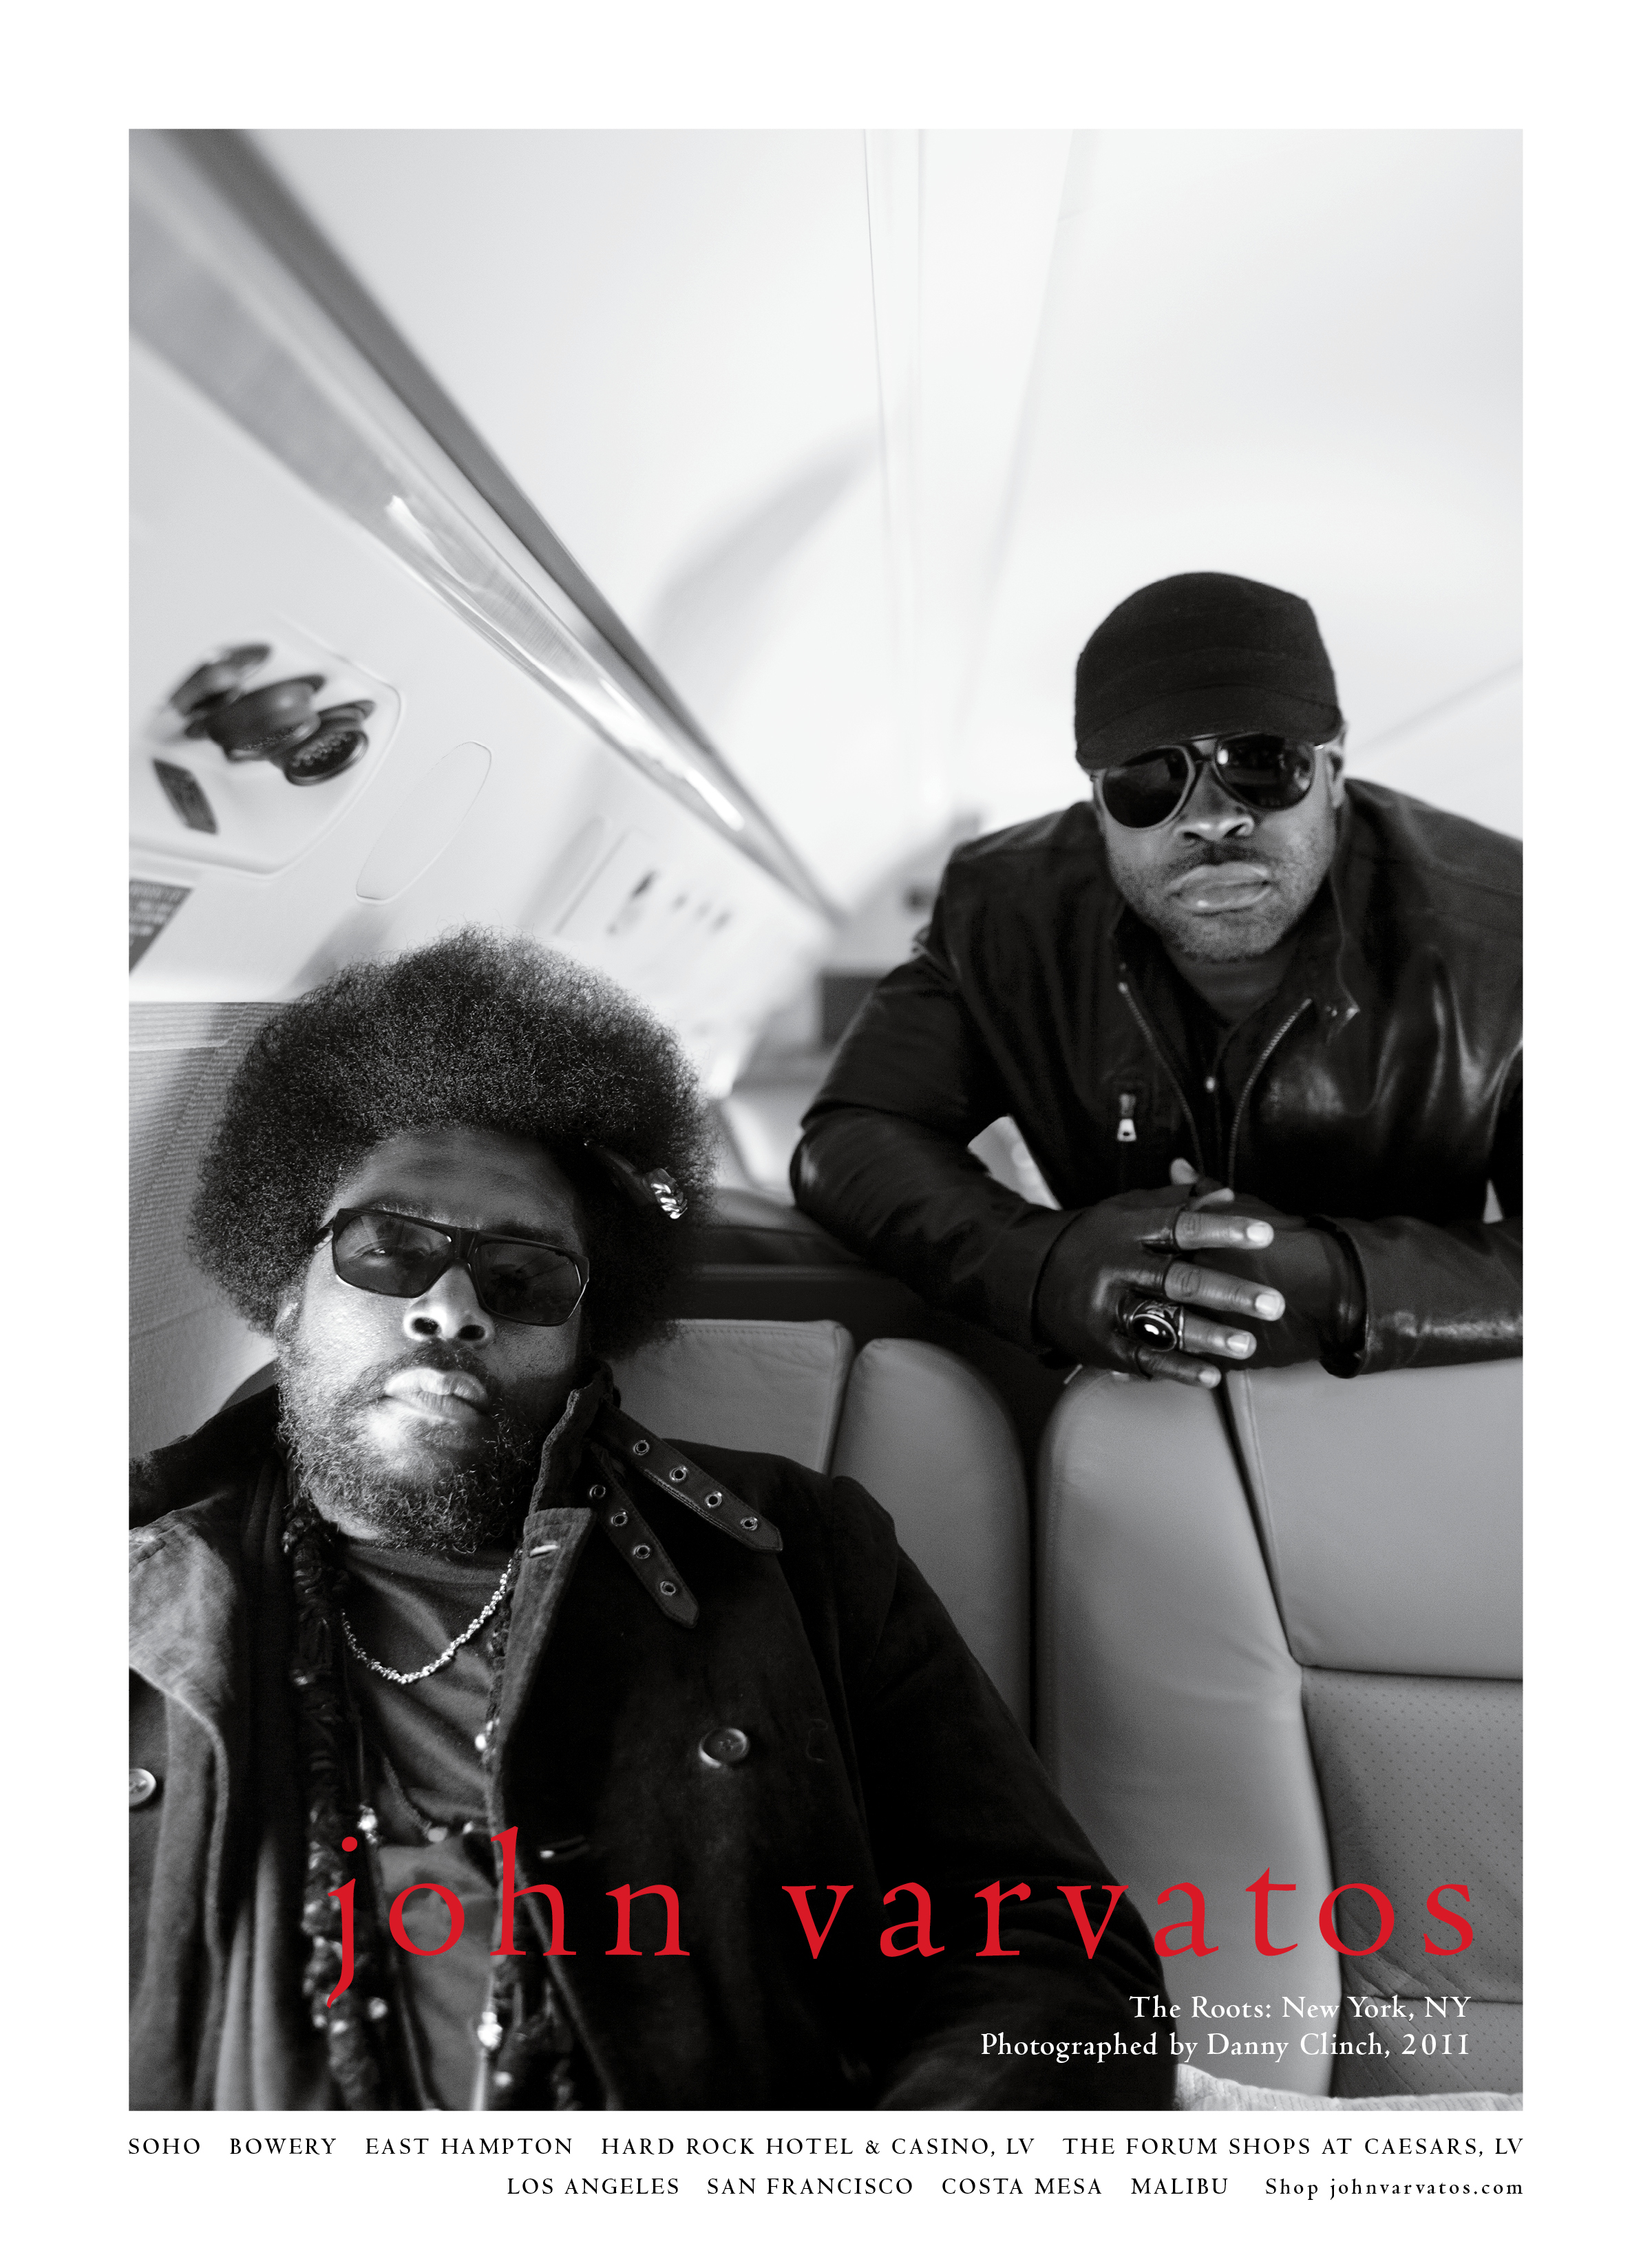 john_varvatos_roots_Questlove_Black_Thought_Black_Thought_Rebecca_Pietri_Stylist_Clinch_Photographer.jpg